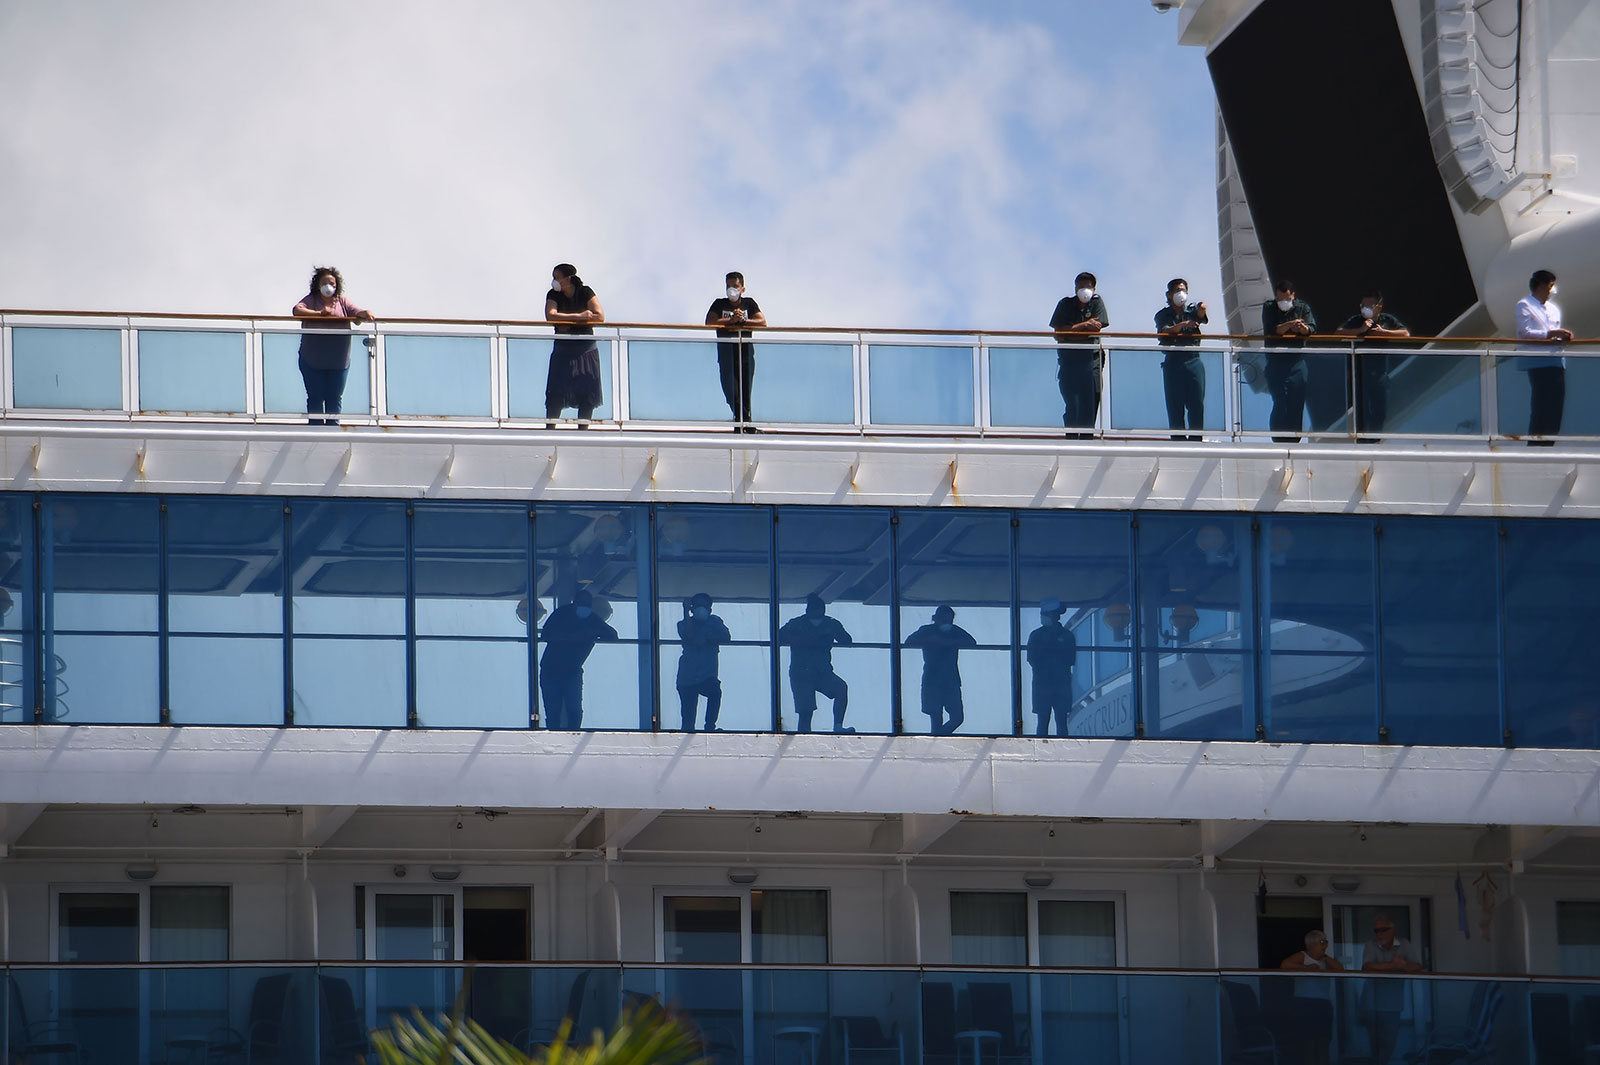 Passengers look out from the deck of the Coral Princess cruise ship as it docks in Miami, Florida, on April 4.